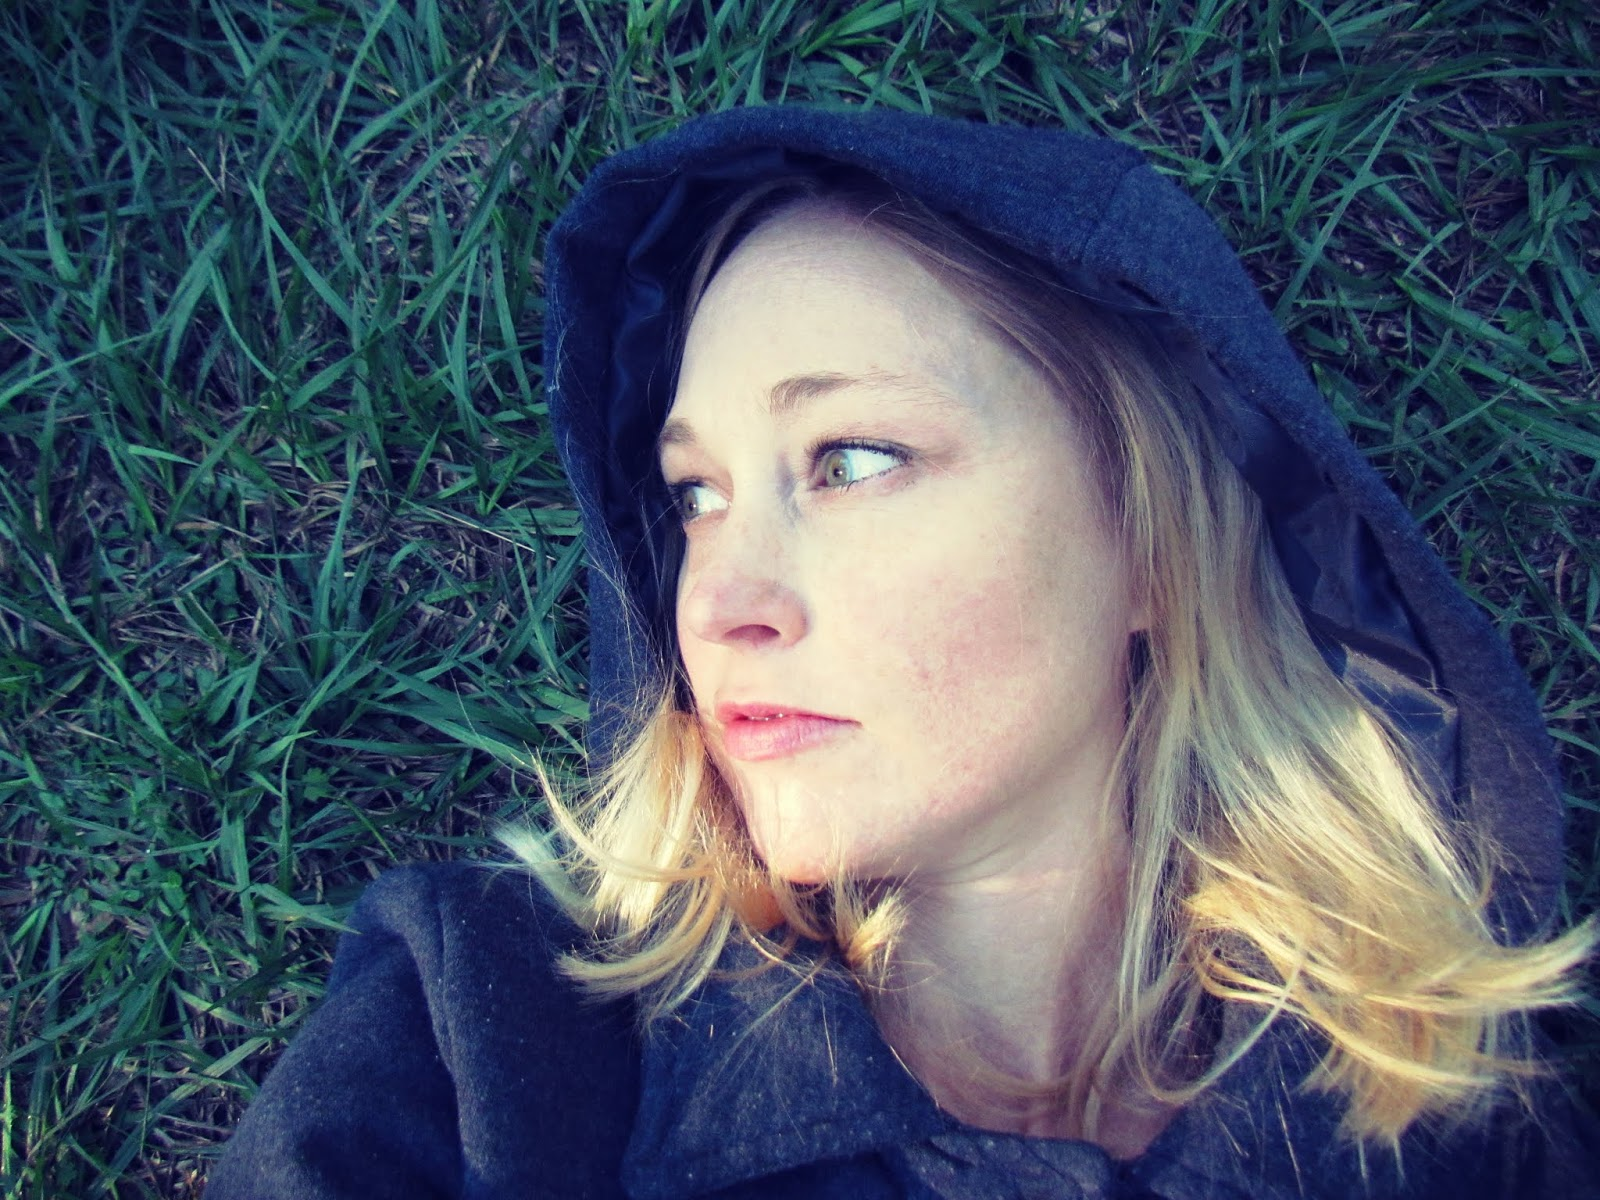 Laying in the Green Grass Daydreaming About the Future